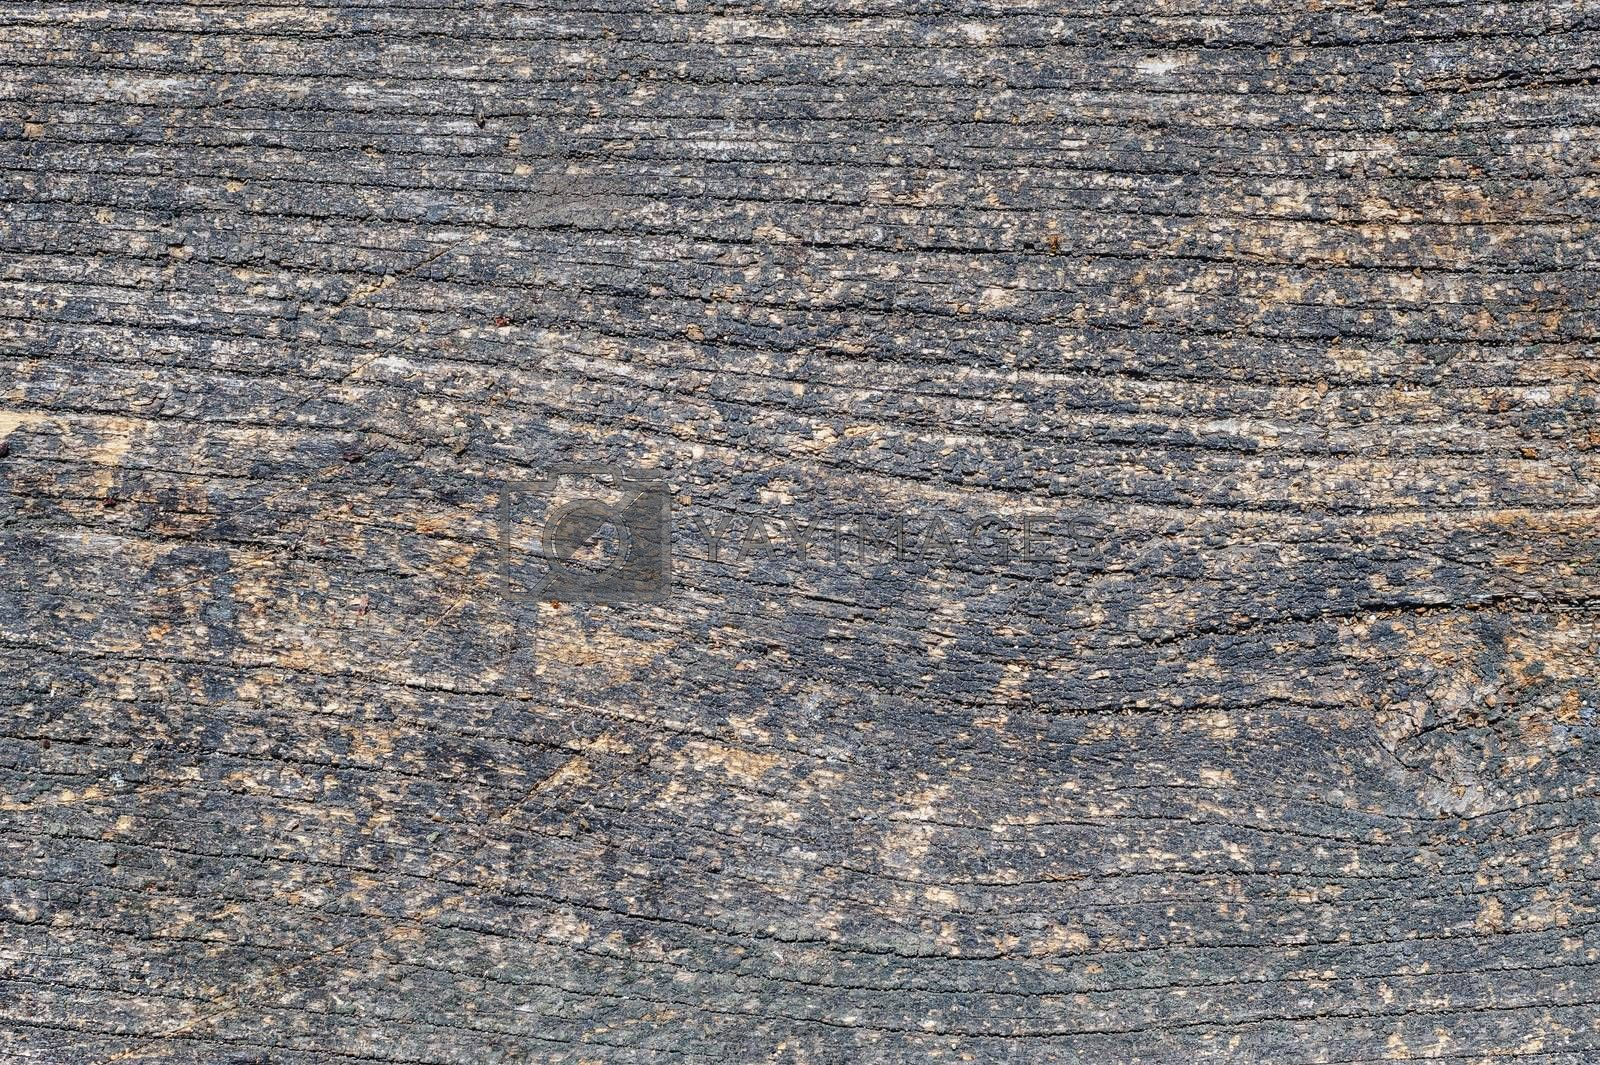 Old aged cracked wood planks, texture with natural organic pattern